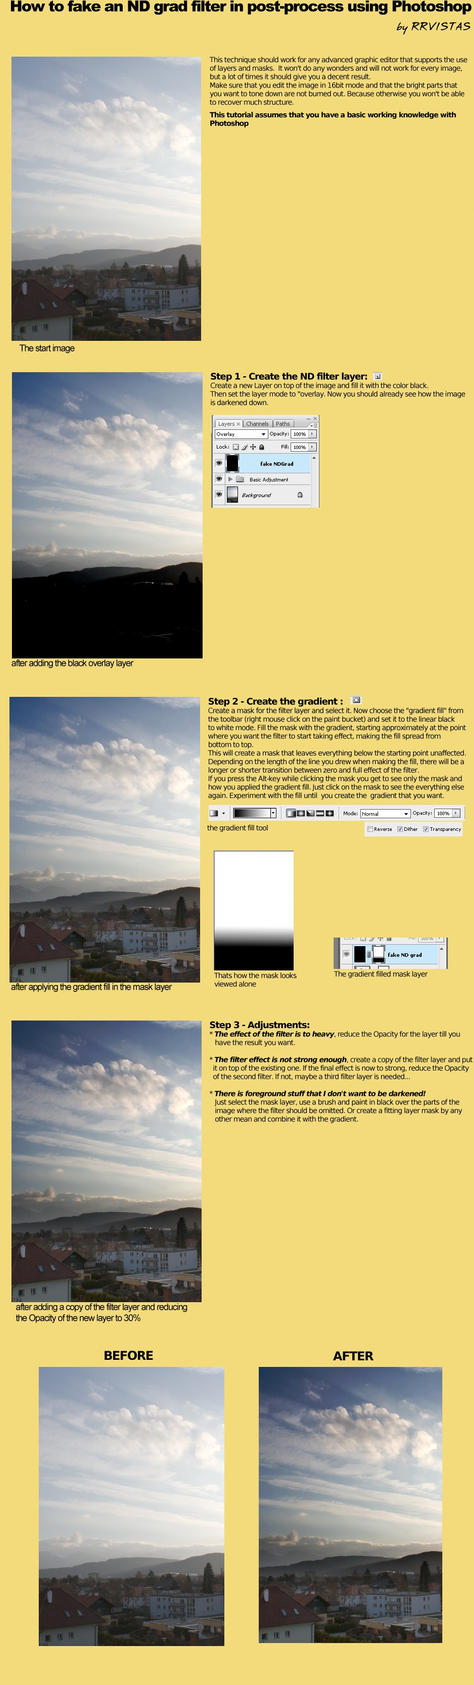 faking a ND grad filter in PS by RRVISTAS